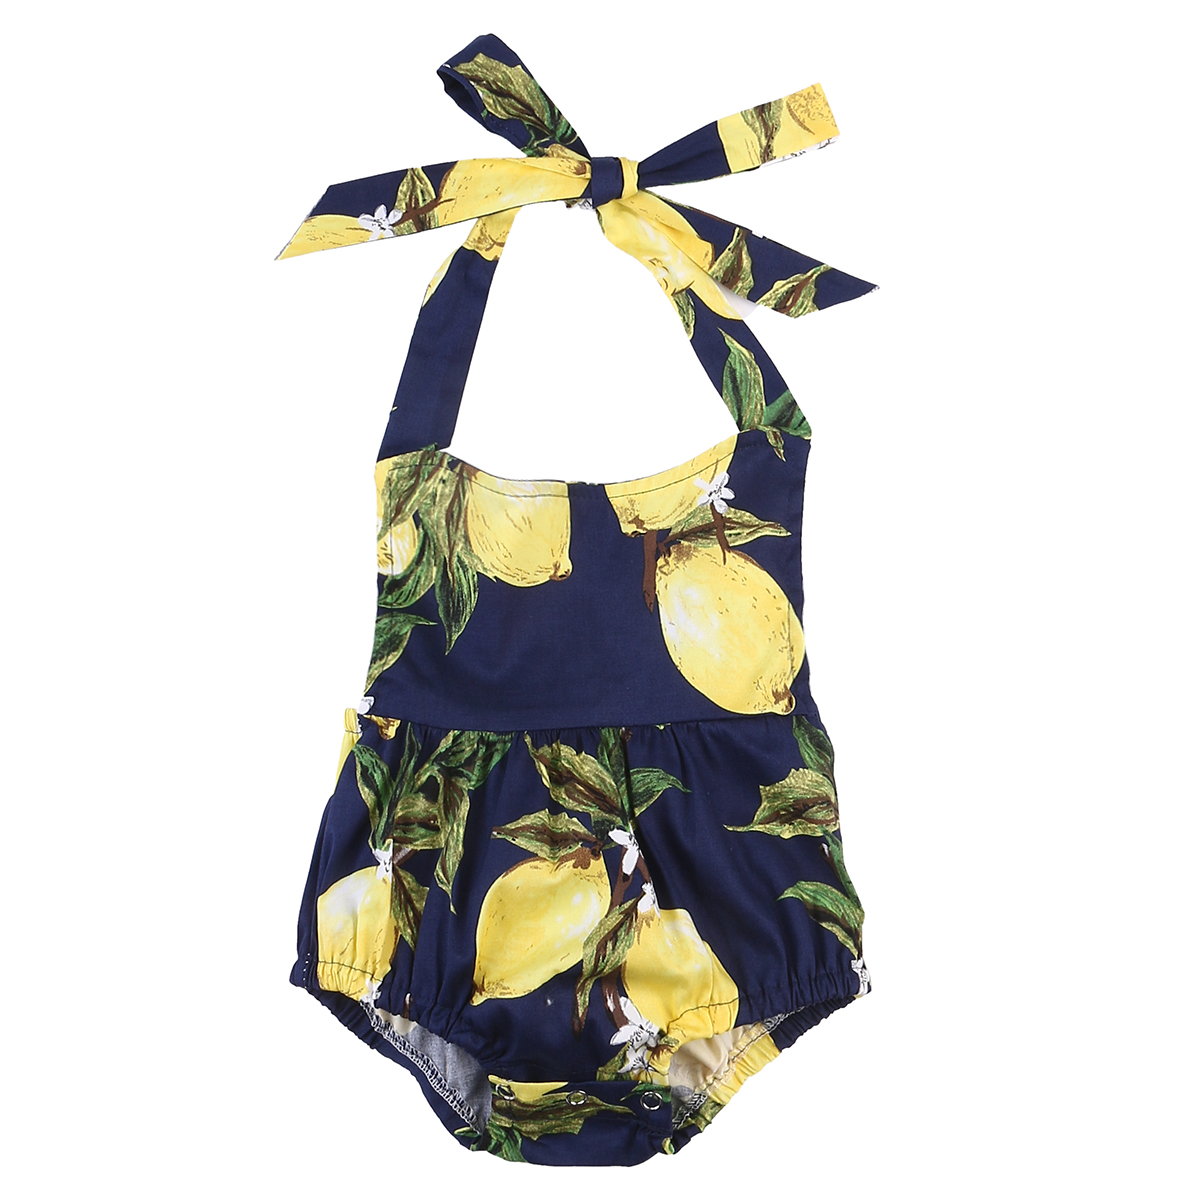 Summer 2017 Newborn Infant Baby Girls Romper Pear Floral Sleeveless Romper Cute Jumpsuit Outfit Baby Girl Clothing Sunsuit 2017 summer newborn infant baby girls clothing set crown pattern romper bodysuit printed pants outfit 2pcs